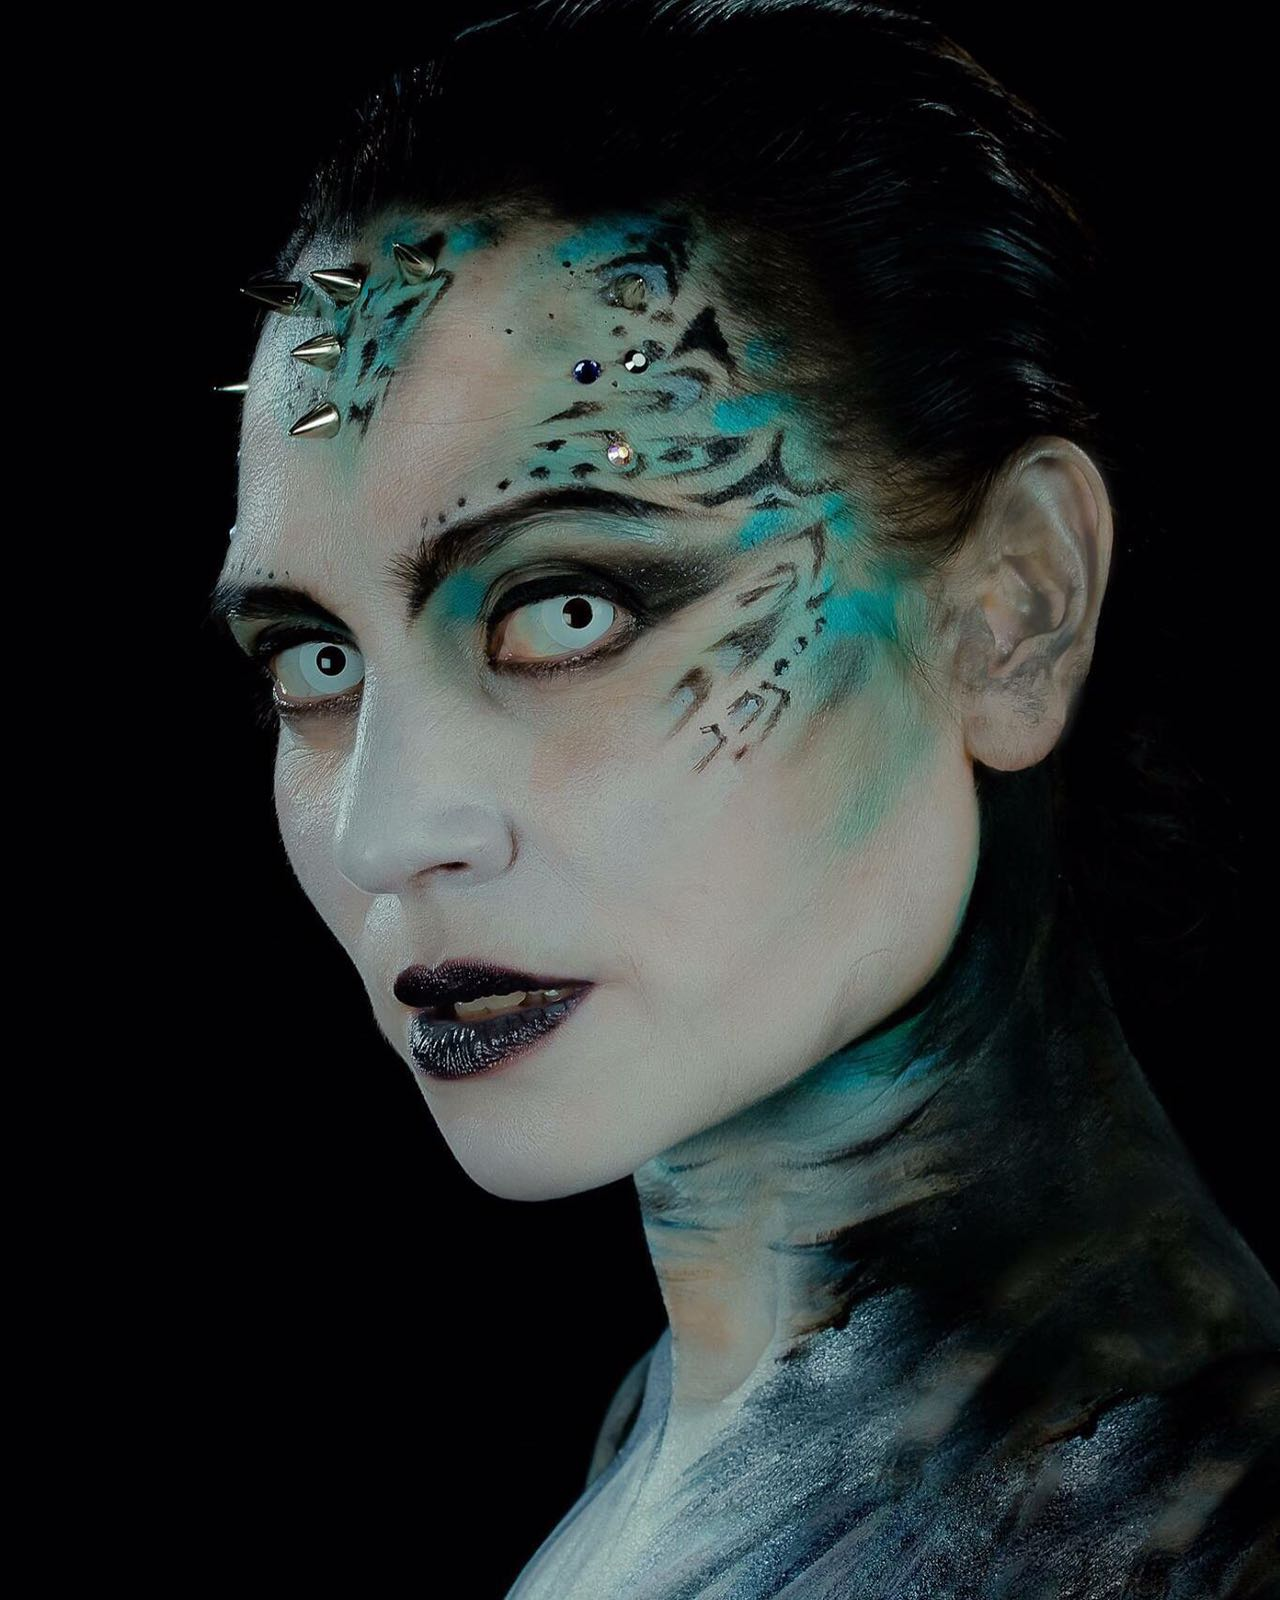 Body Paint & Make-up